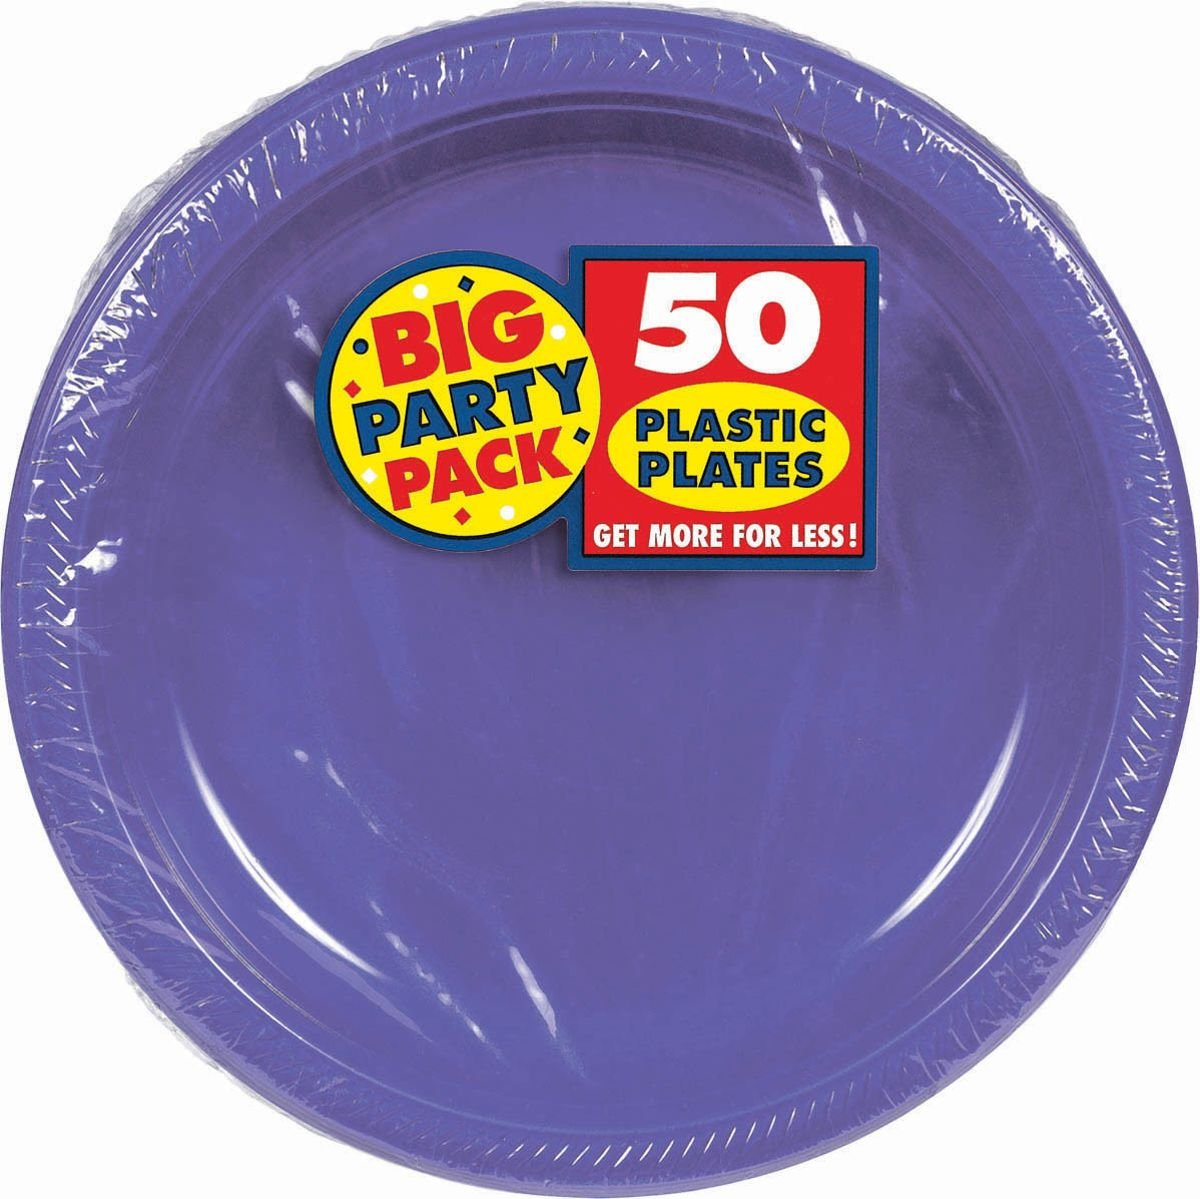 Amscan Big Party Pack 50 Count Plastic Lunch Plates, 10.5-Inch, New Purple by Amscan